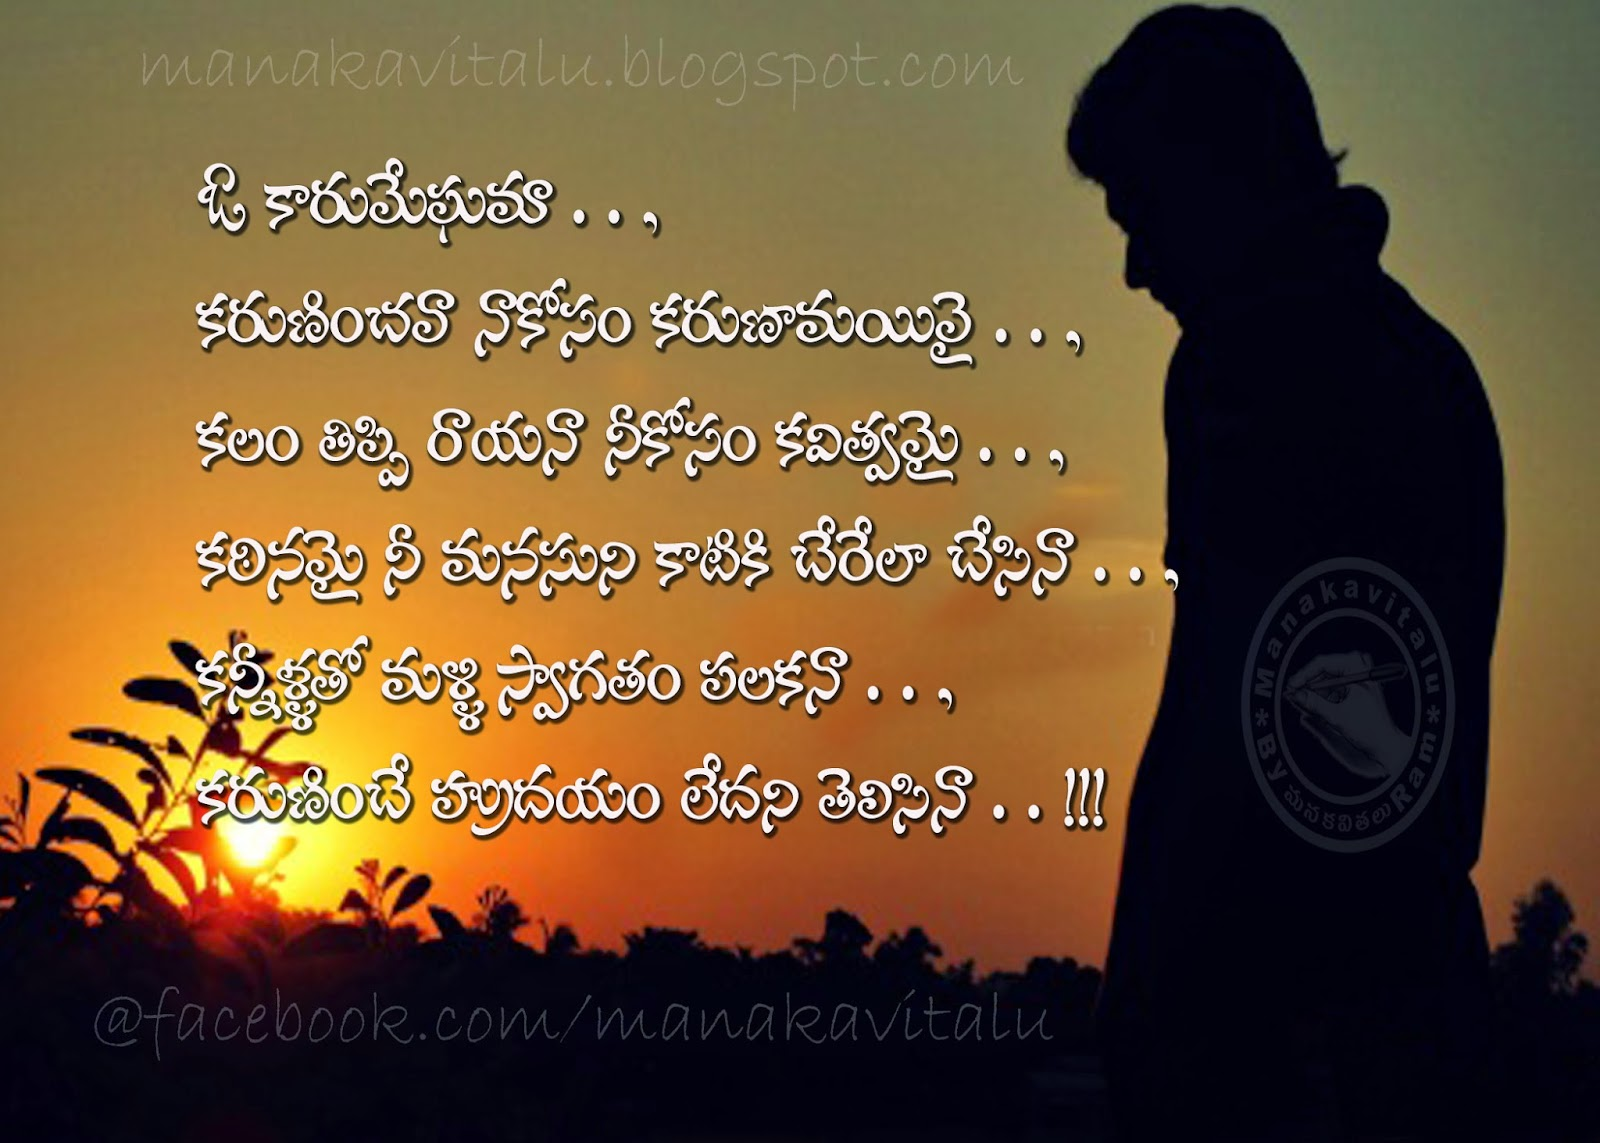 o kaaru meghama telugu love kavitalu on images